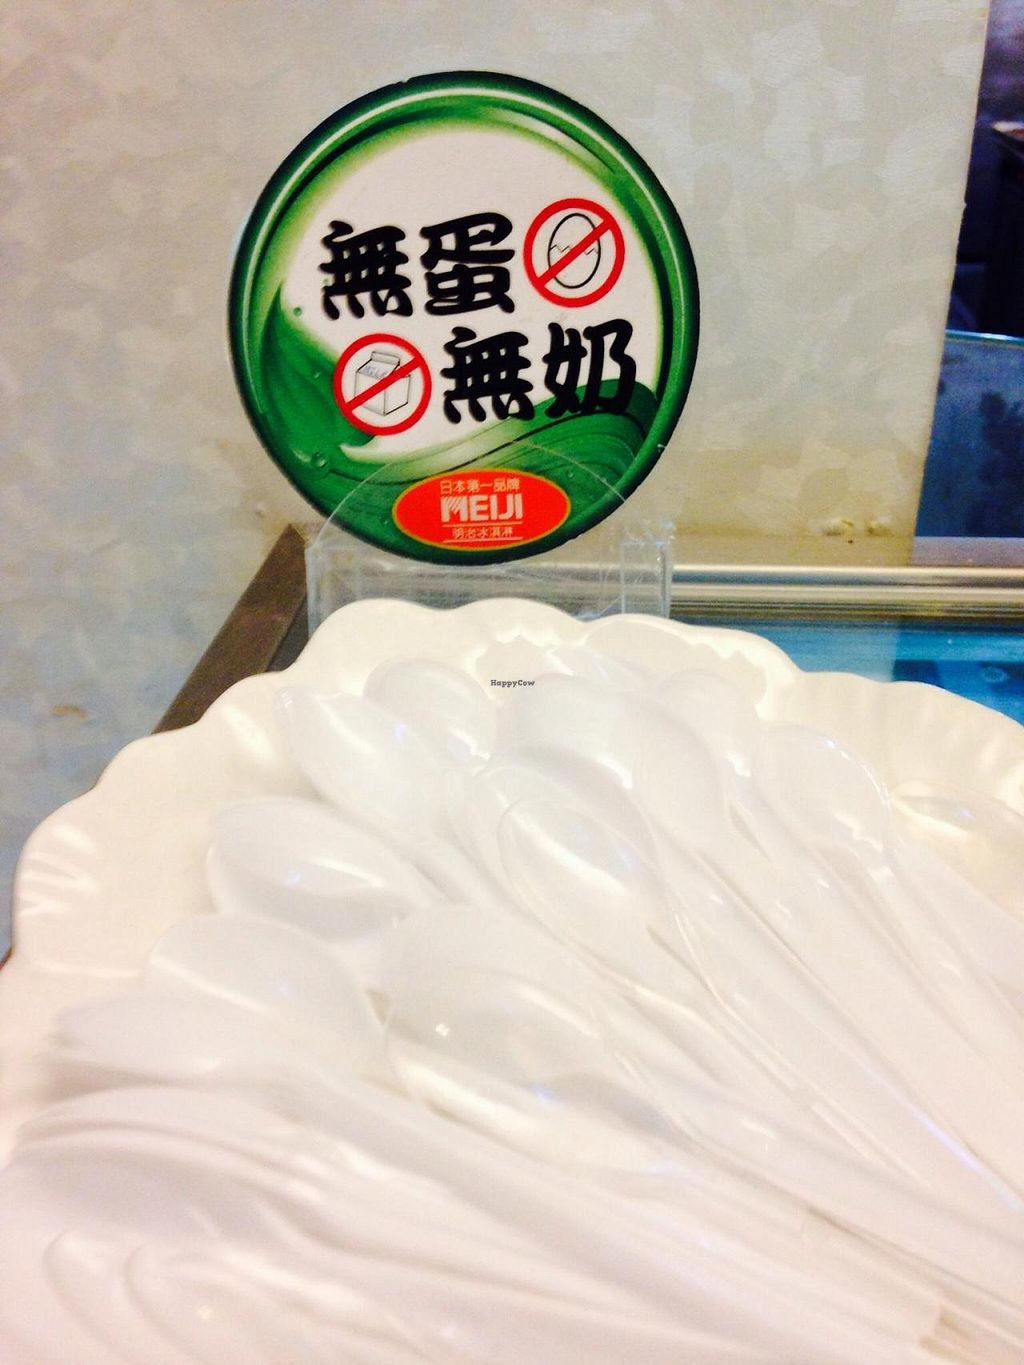 """Photo of Spring - Heping East Road  by <a href=""""/members/profile/cookiem"""">cookiem</a> <br/>Japanese dairy and egg free ice cream signage <br/> November 30, 2014  - <a href='/contact/abuse/image/303/86816'>Report</a>"""